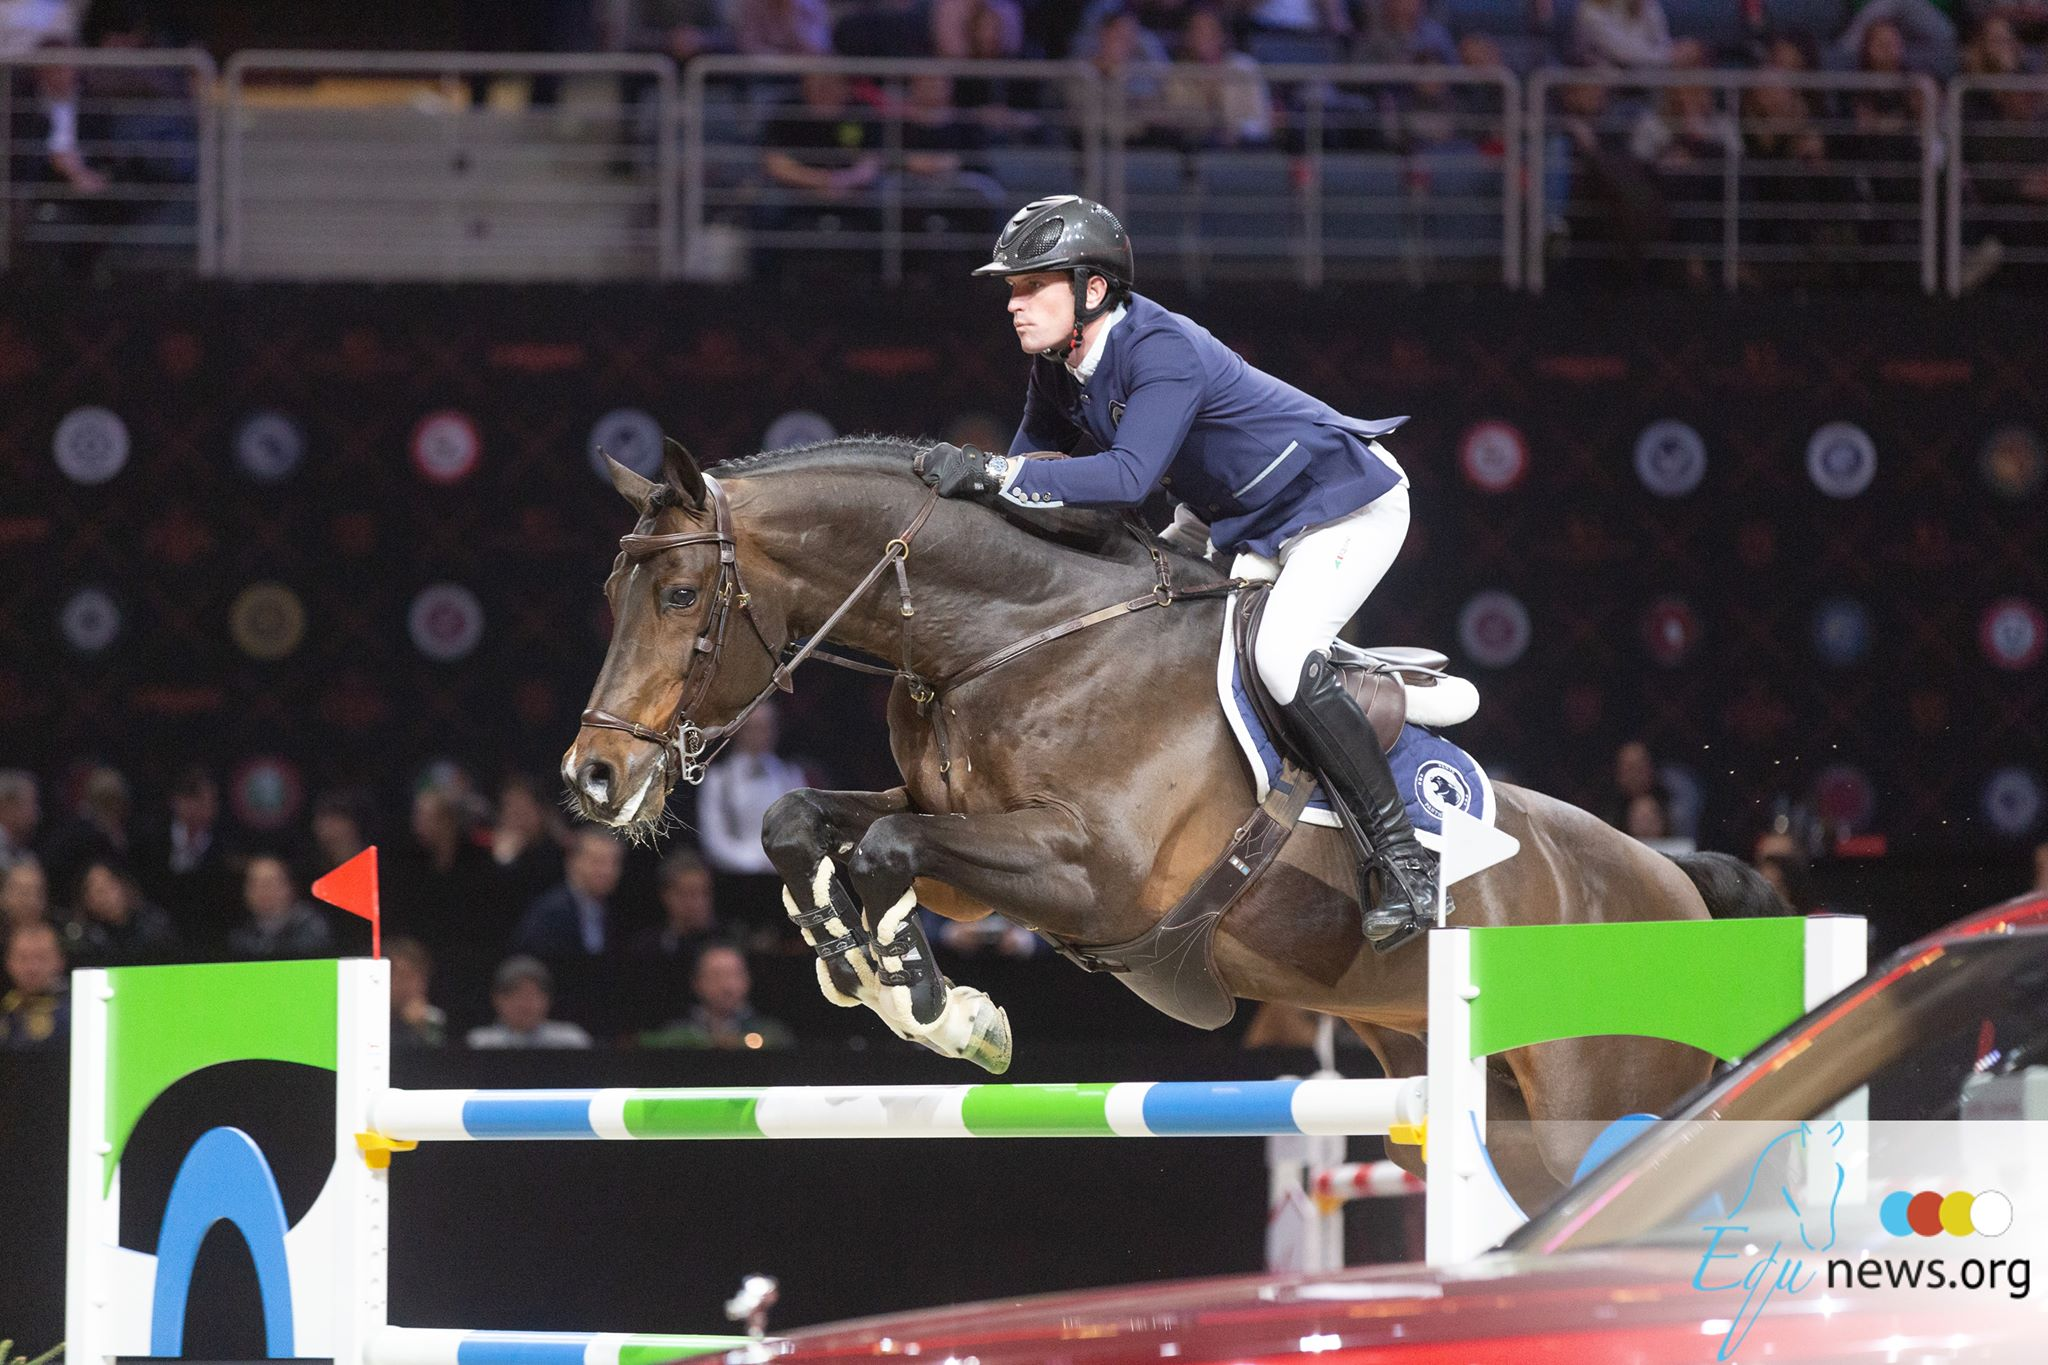 Stunning victory for Darragh Kenny and Important de Muze in Stockholm